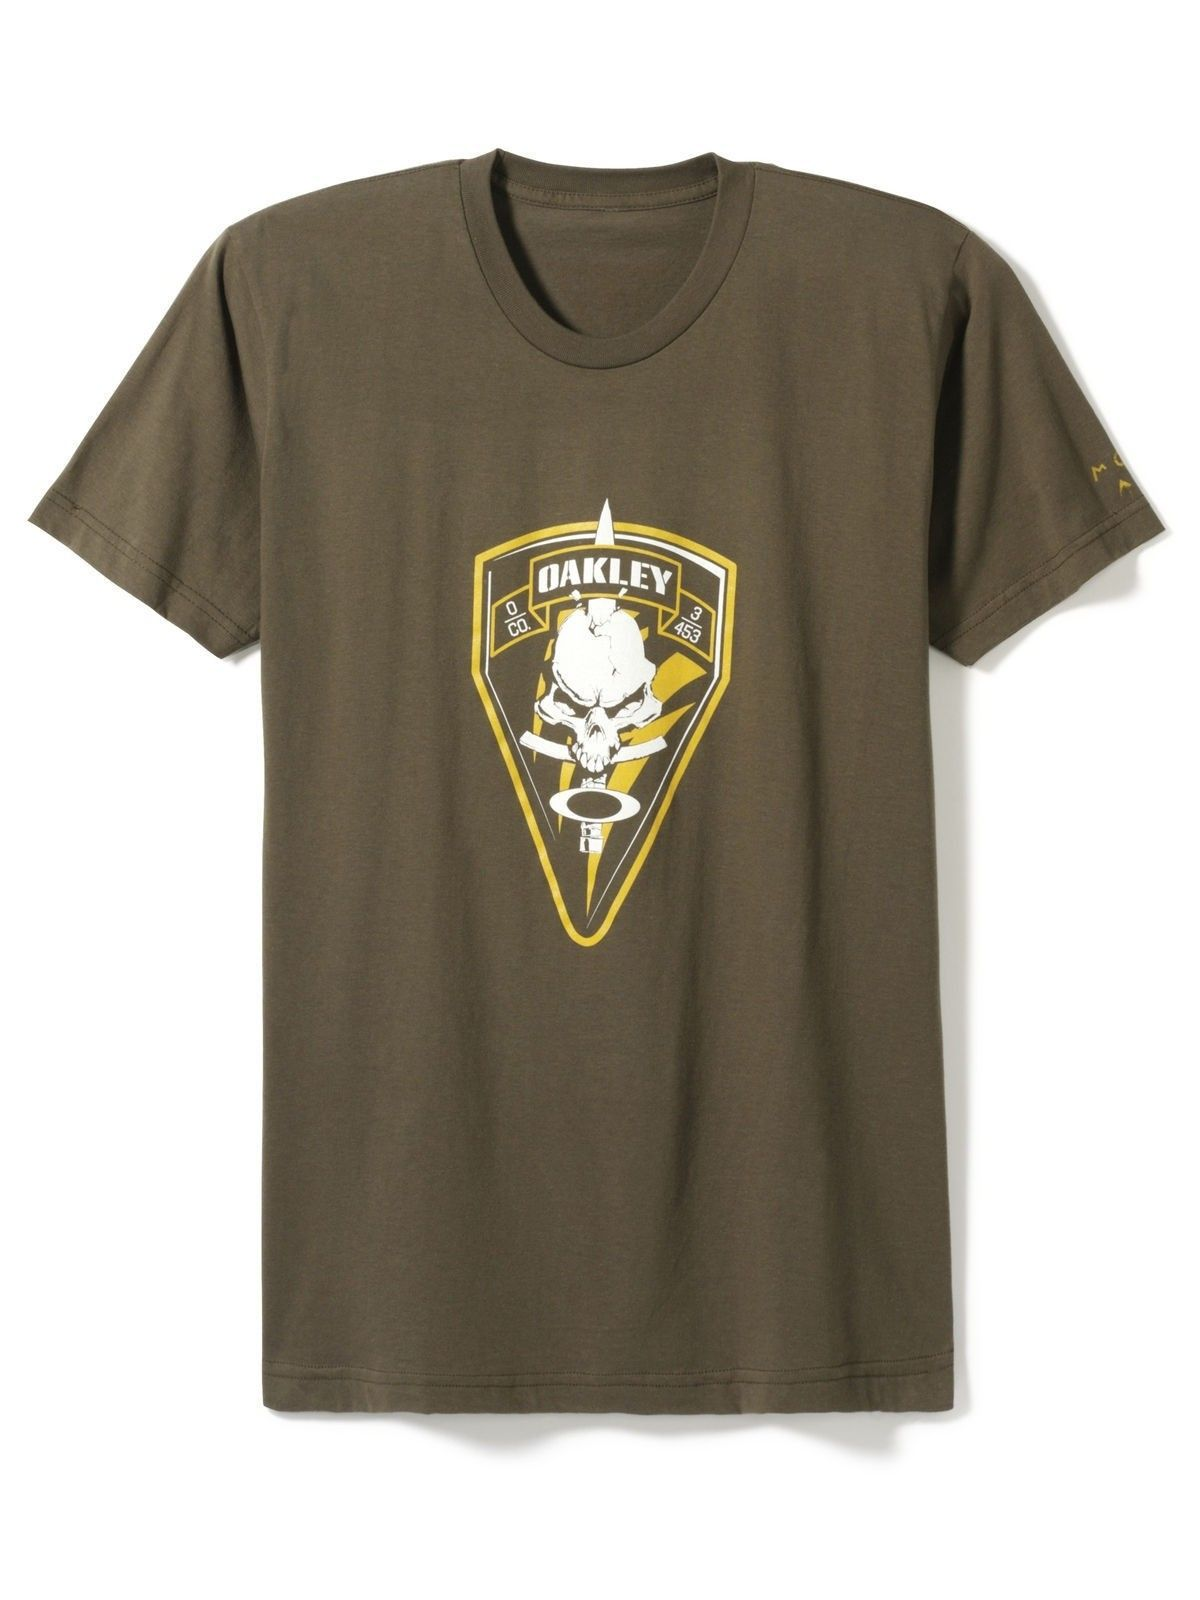 """Which O T Shirt Design Has """"molon Labe"""" On The Sleeve? - oakley-opdet-t-shirt-worn-olive-36771_l1.jpg"""